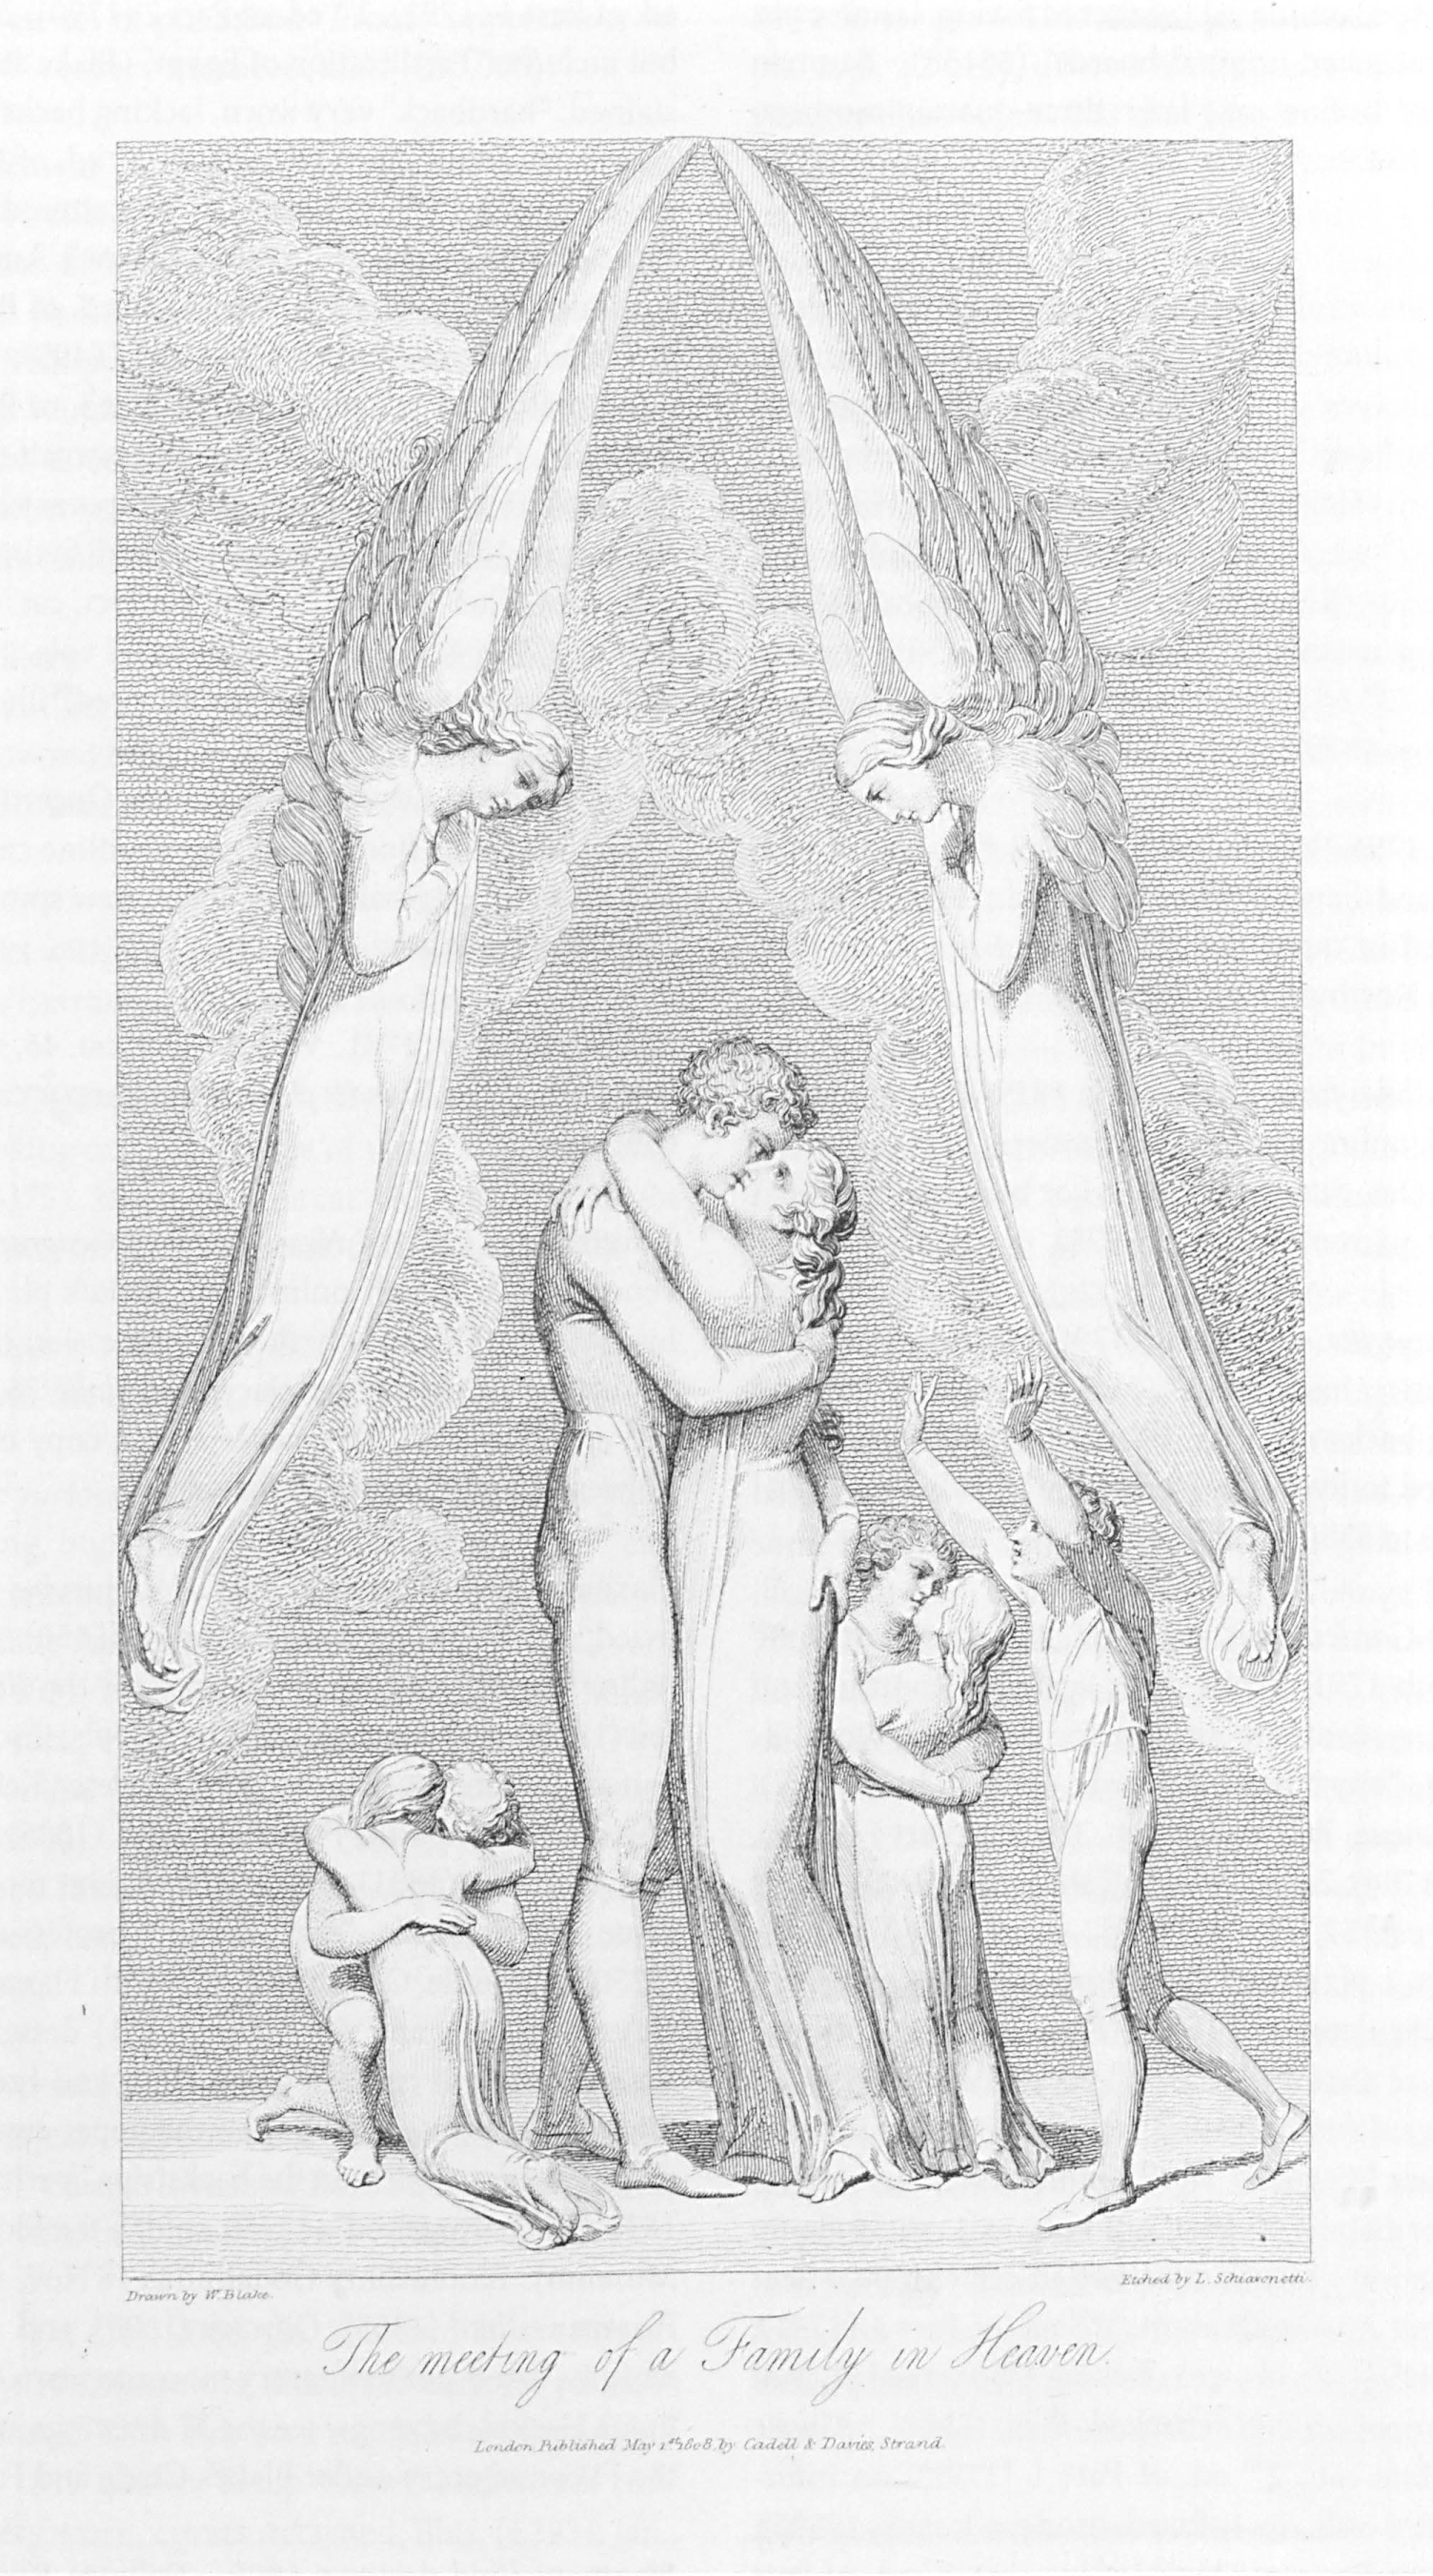 Drawn by W. Blake.                          Etched by L. Schiavonetti.                          The meeting of a Family in Heaven.                          London. Published May 1st. 1808, by Cadell & Davies, Strand.